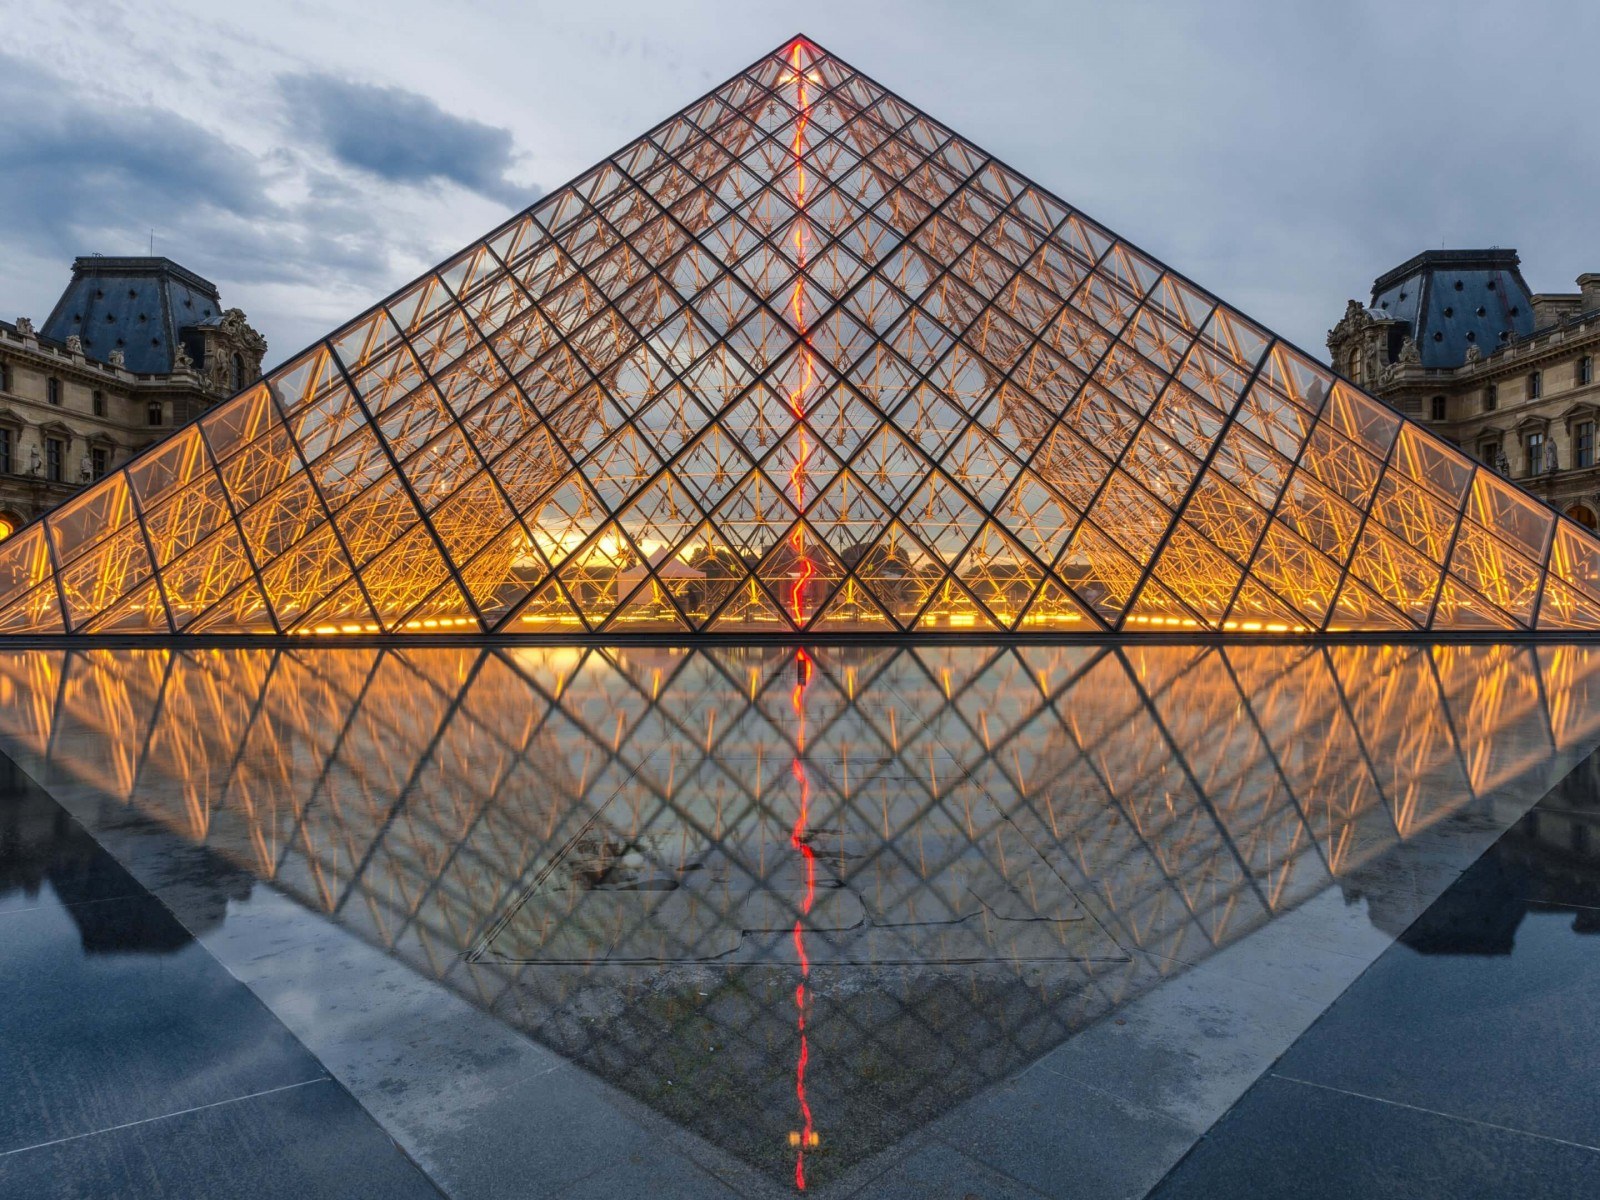 The Louvre HD wallpaper for 1600 x 1200   HDwallpapersnet 1600x1200